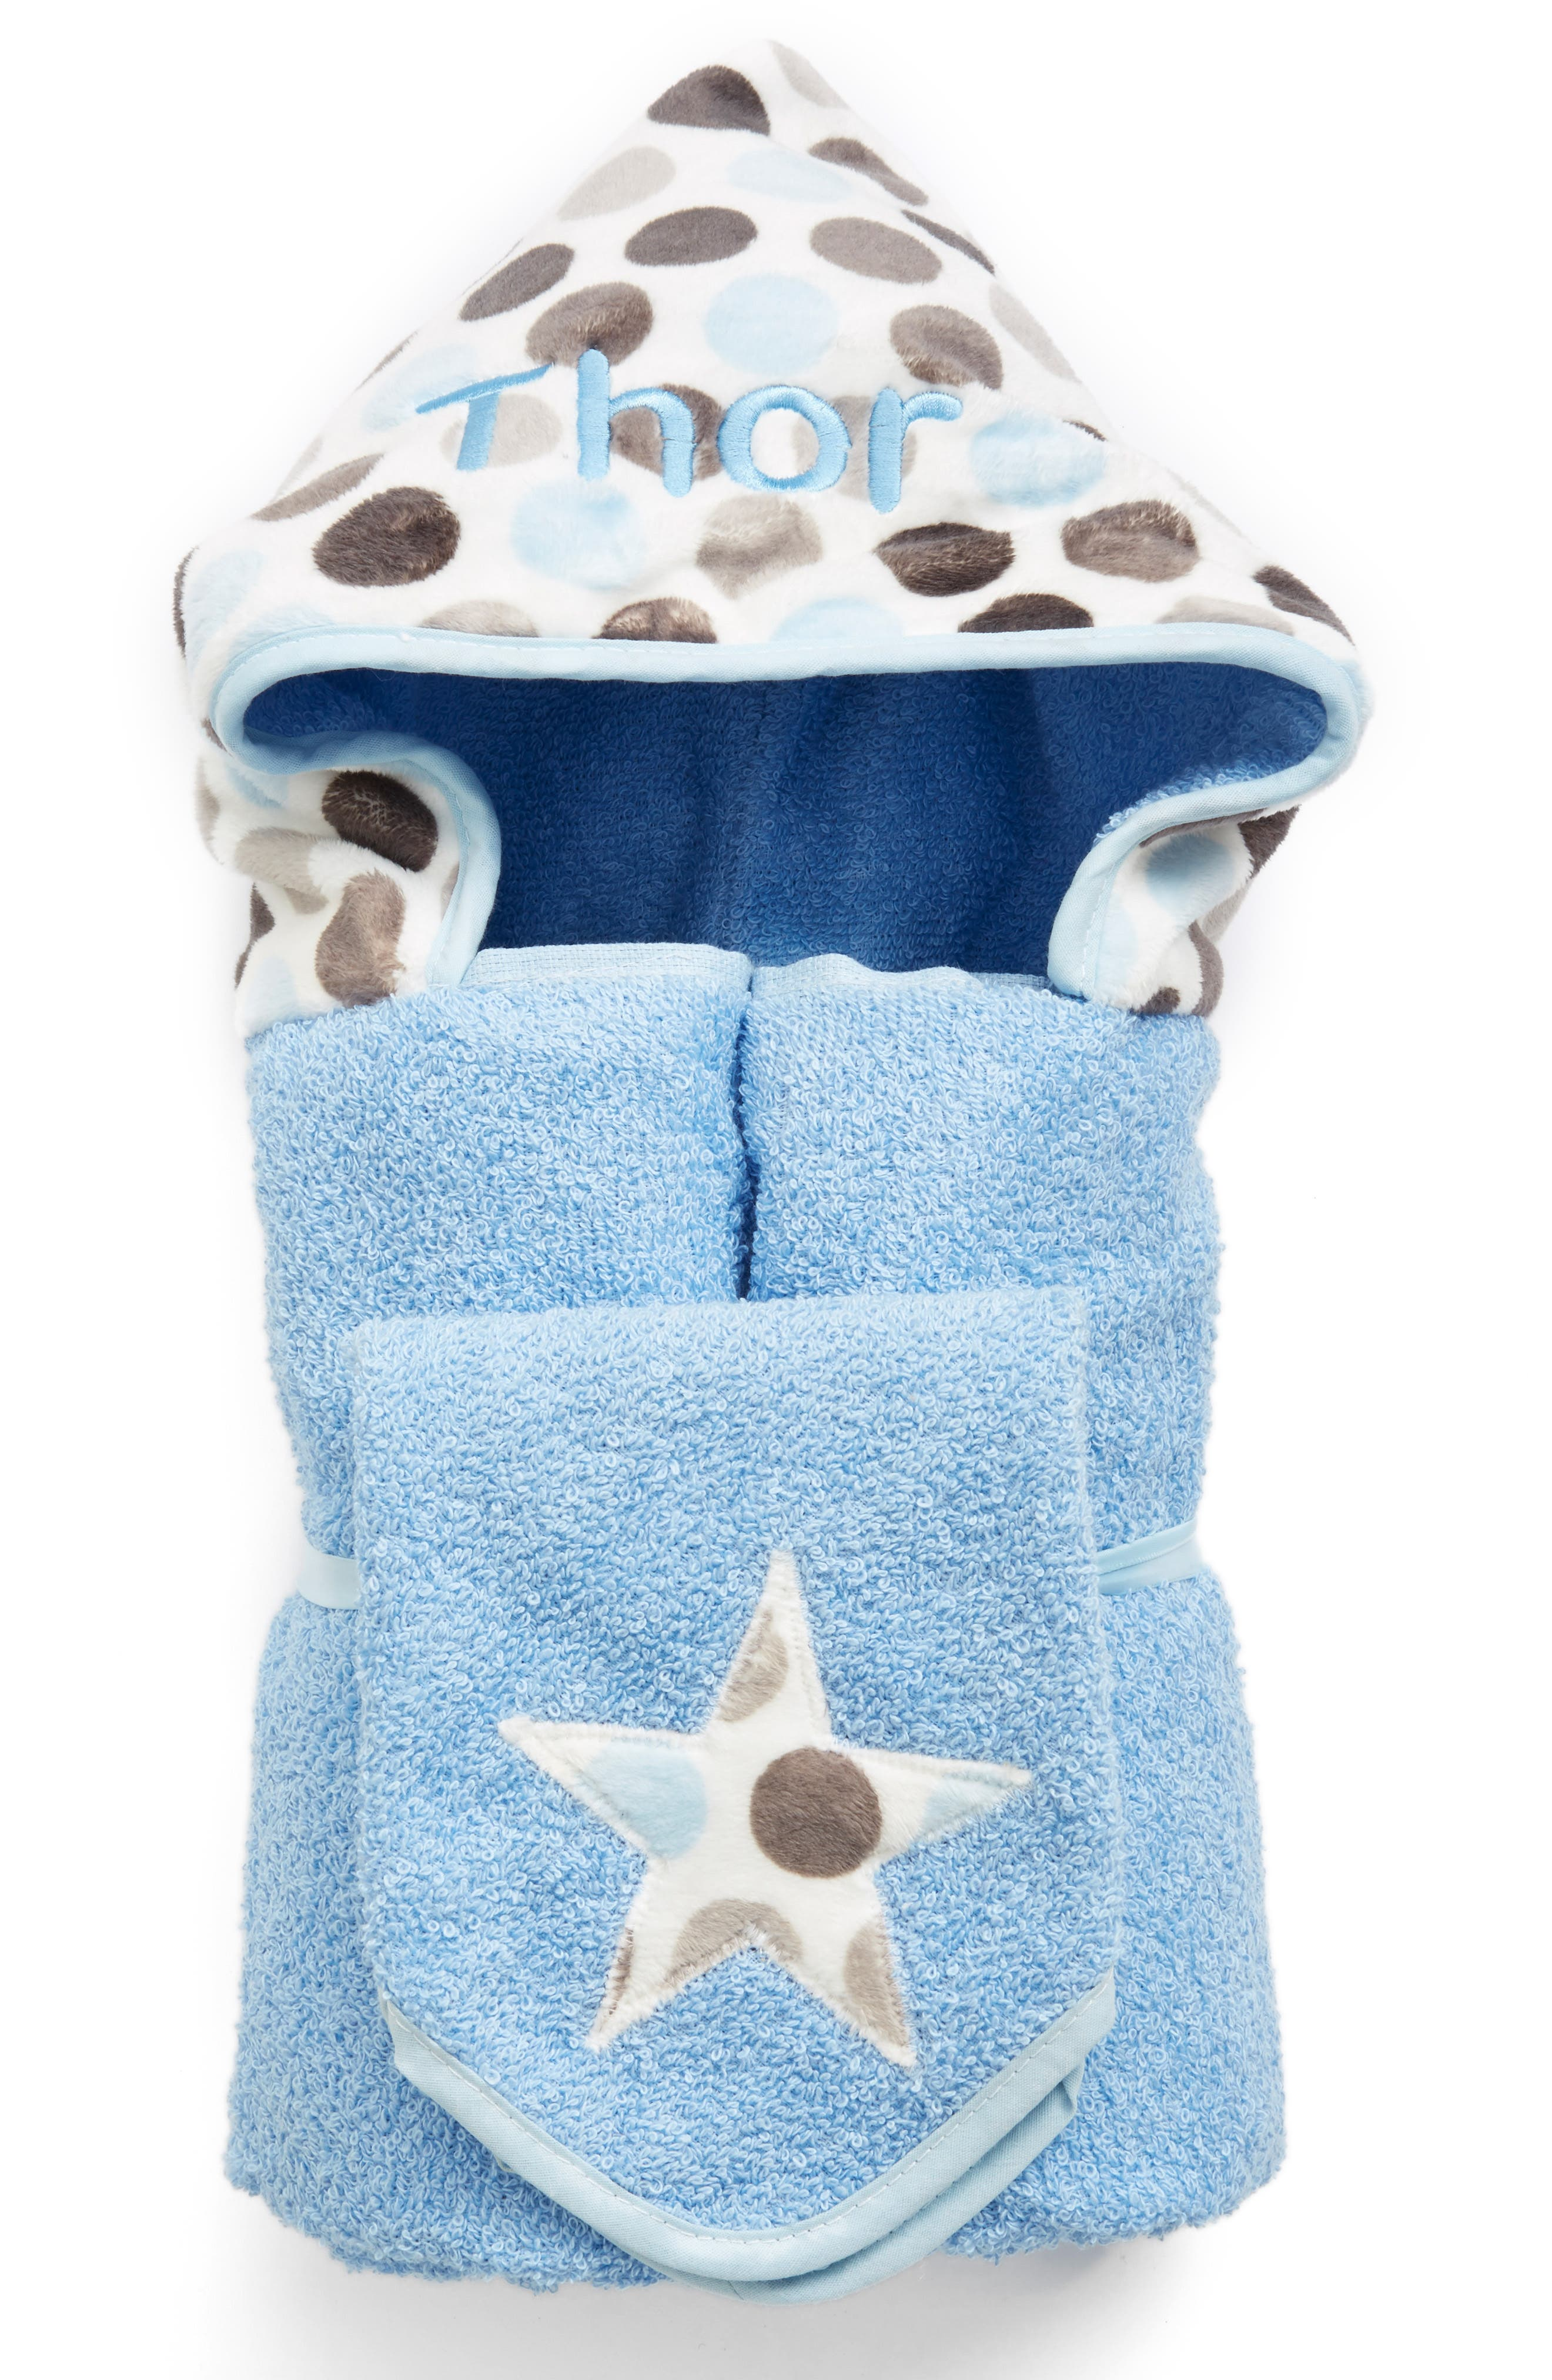 BIBZ N THINGZ,                             Personalized Hooded Towel,                             Alternate thumbnail 2, color,                             BLUE DOT